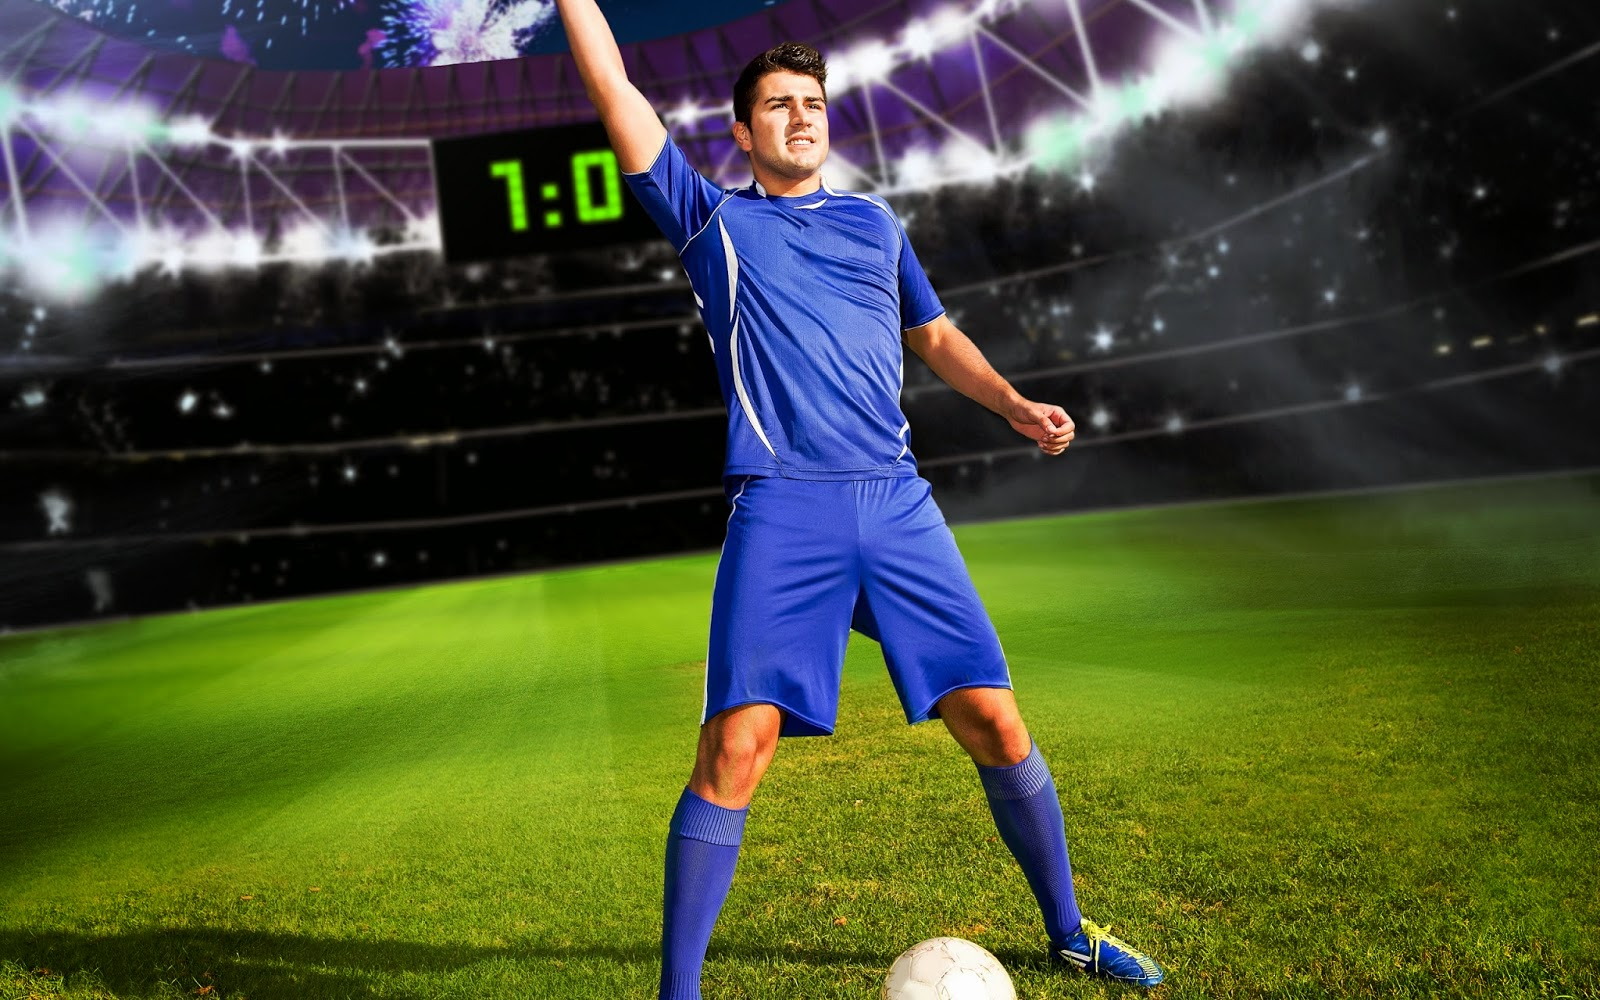 Sports Wallpaper For Android Free Download: Free Download Software Games Wallpapers Books Android